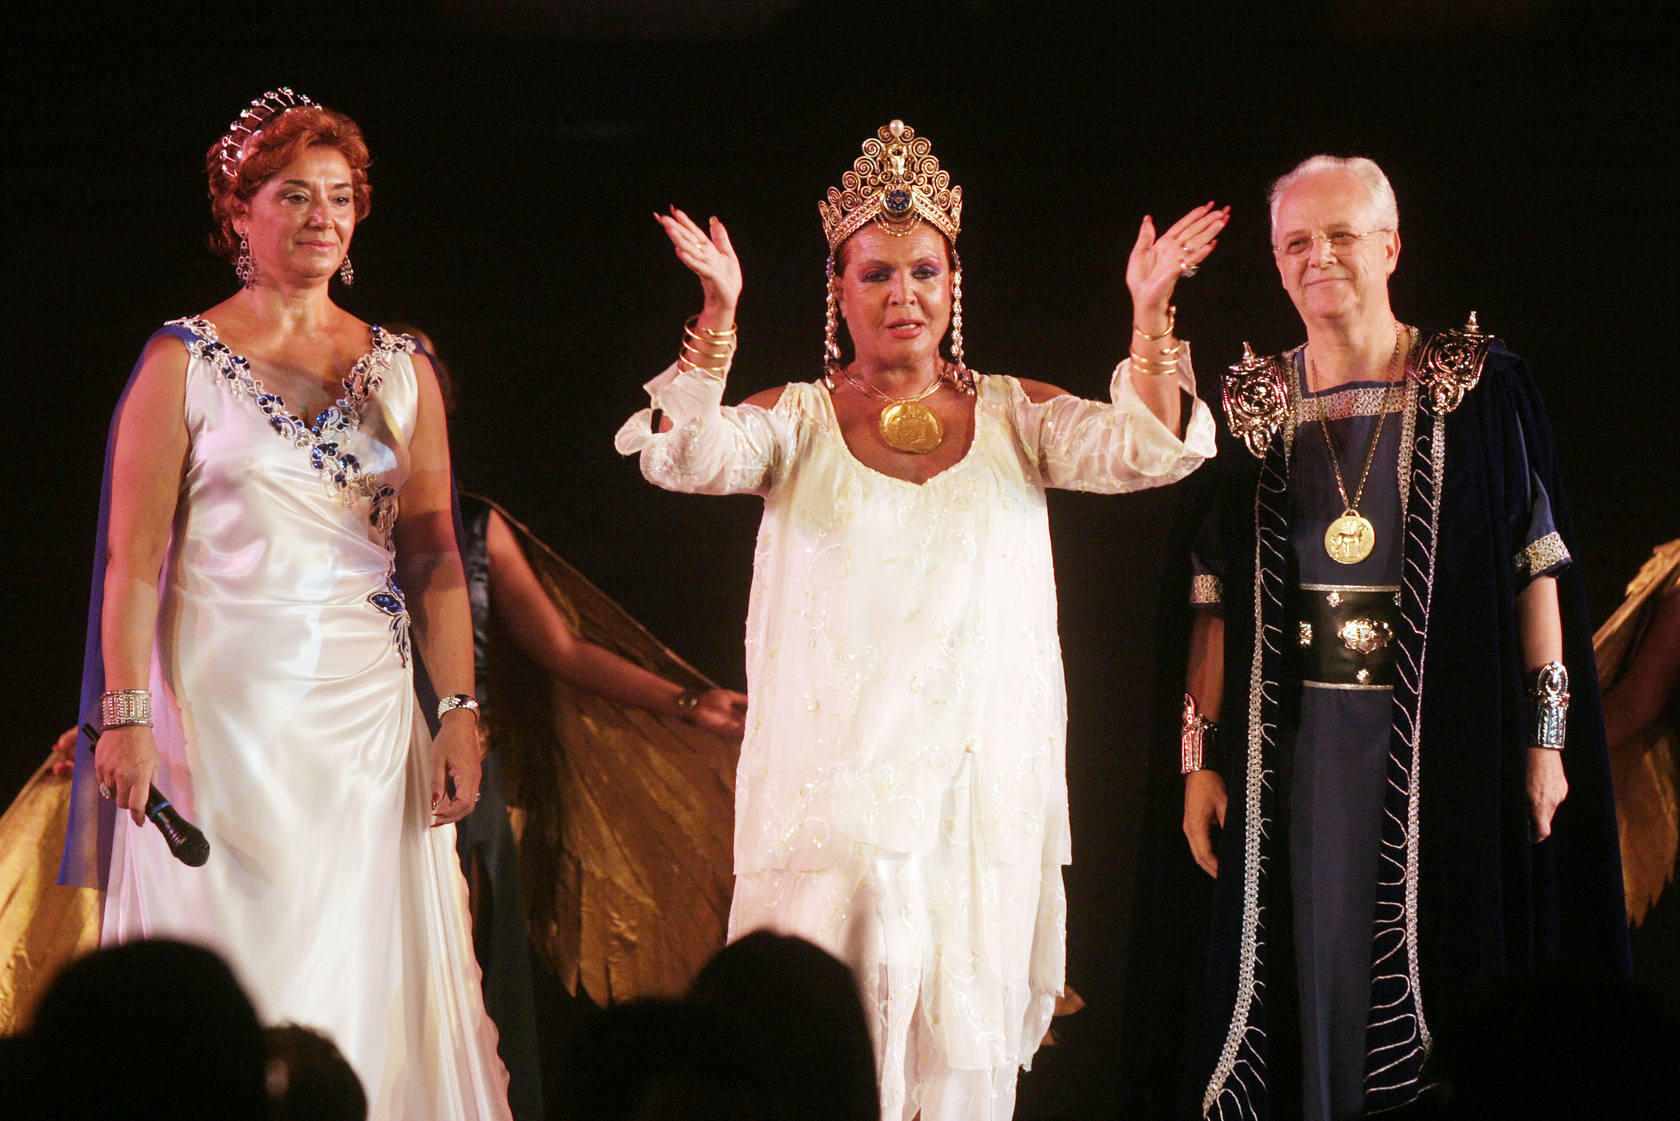 Sara Montiel, Gran Dama de Carthago en 2004